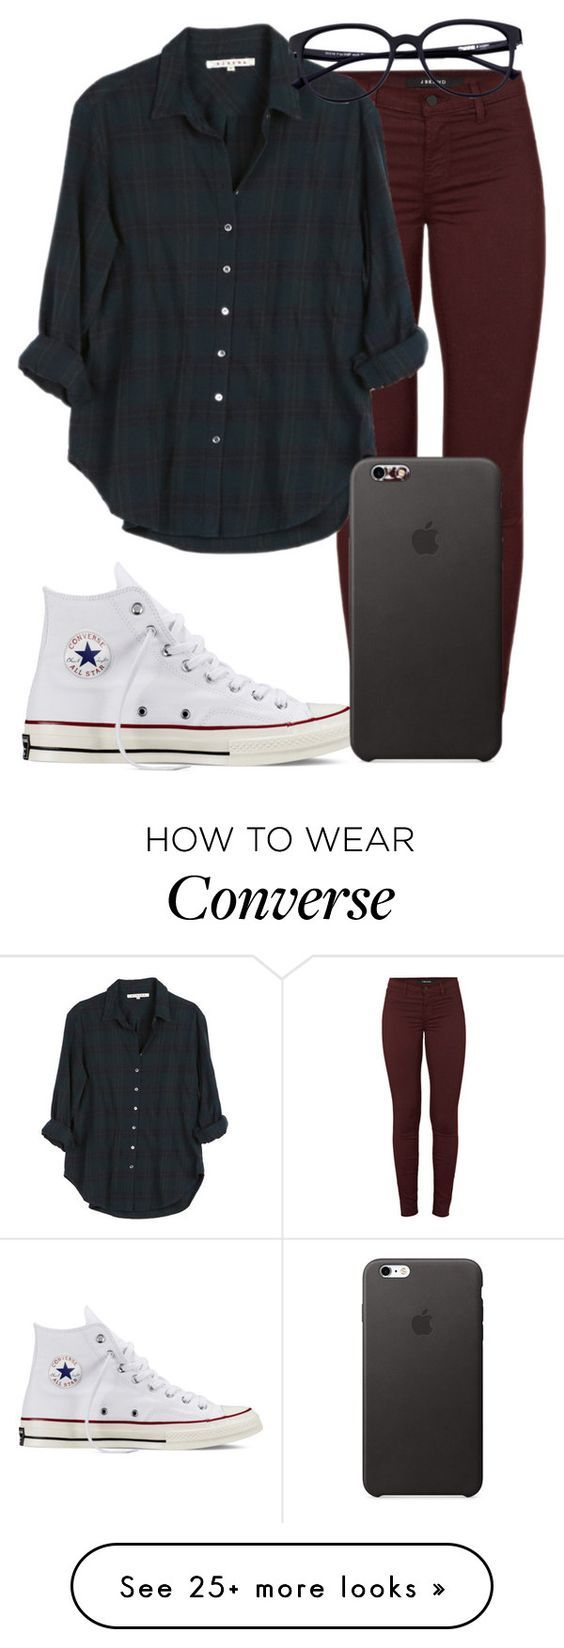 """Baby, it's Magic"" by mallorimae on Polyvore featuring J Brand, Xirena and Converse:"